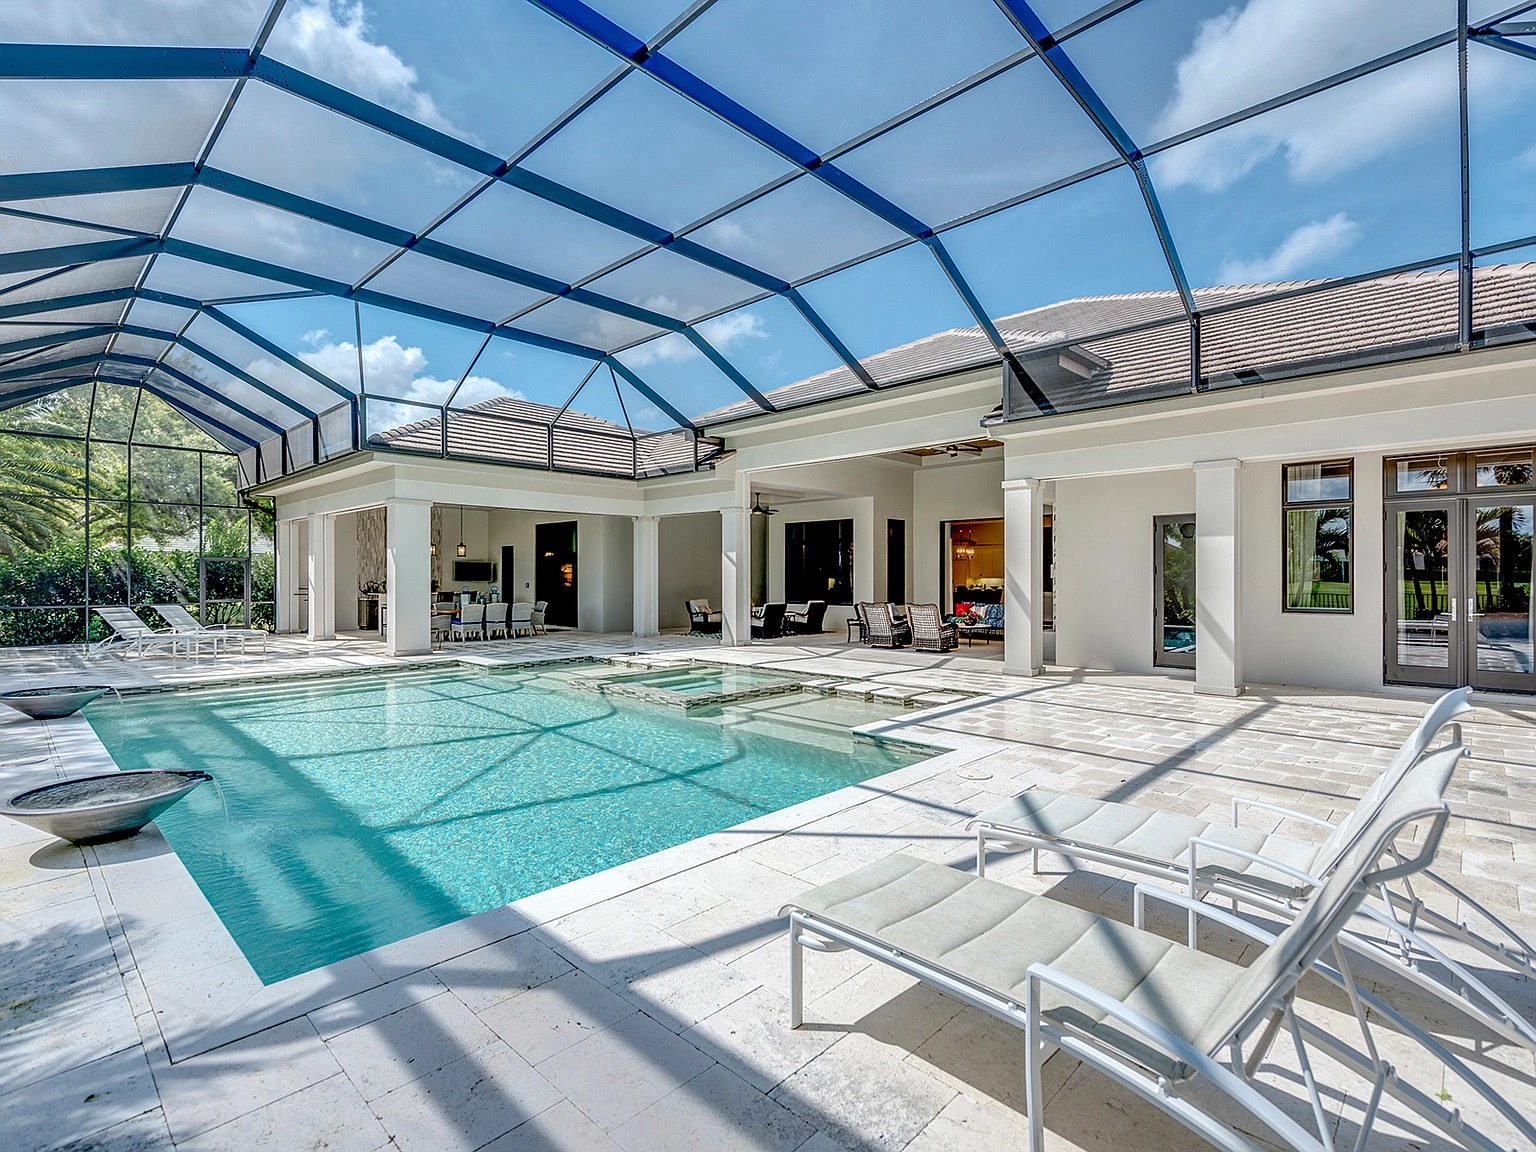 13970 Williston Way, Naples, FL 34119 - $3,195,000 home for sale, house images, photos and pics gallery